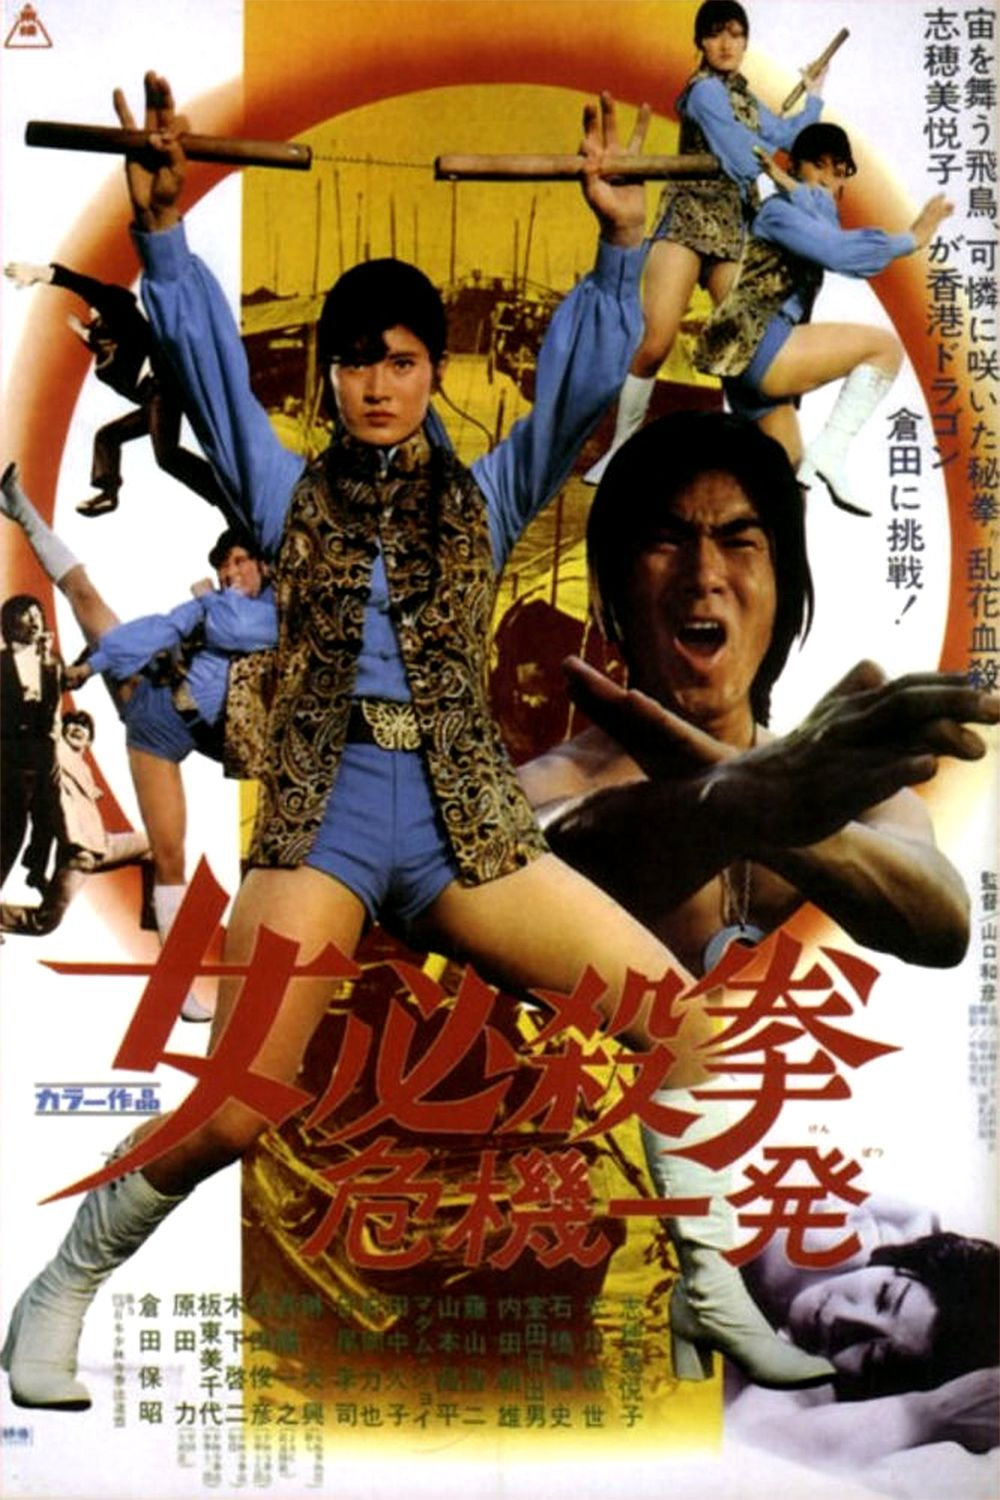 sister streetfighter | martial arts | pinterest | movie